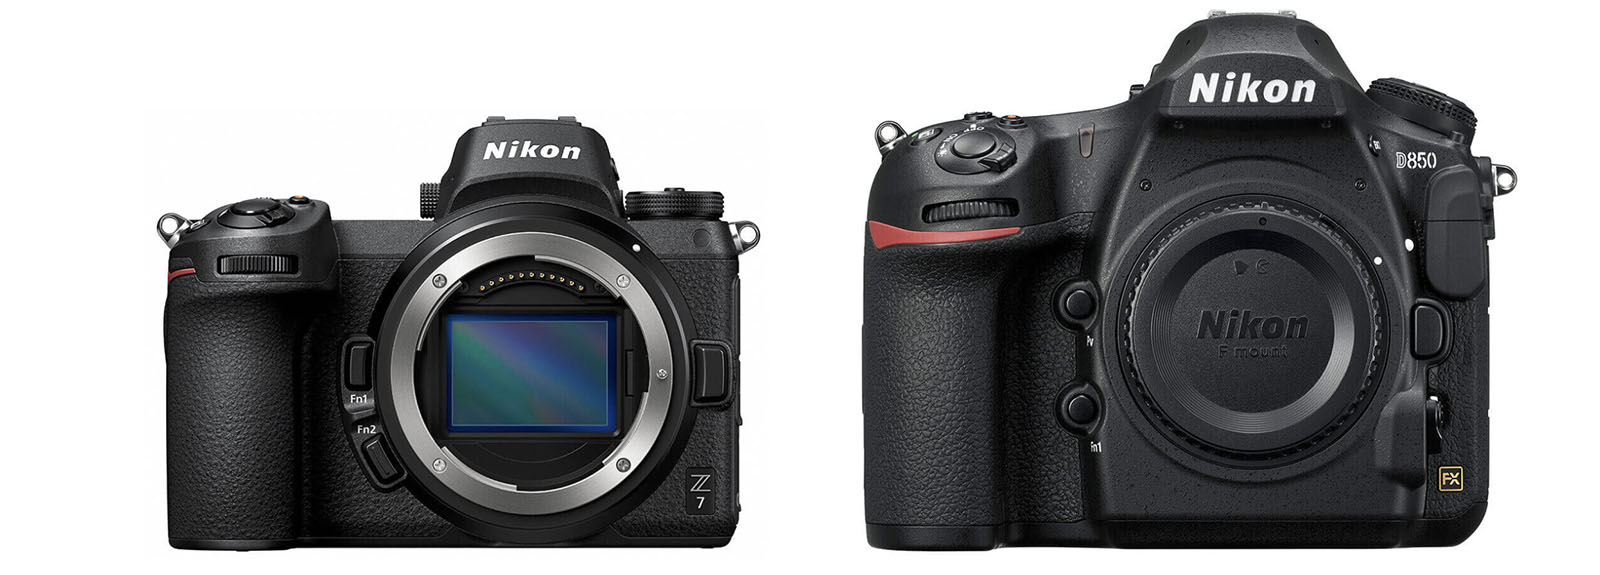 The Nikon Z7 is significantly smaller than the Nikon D850.